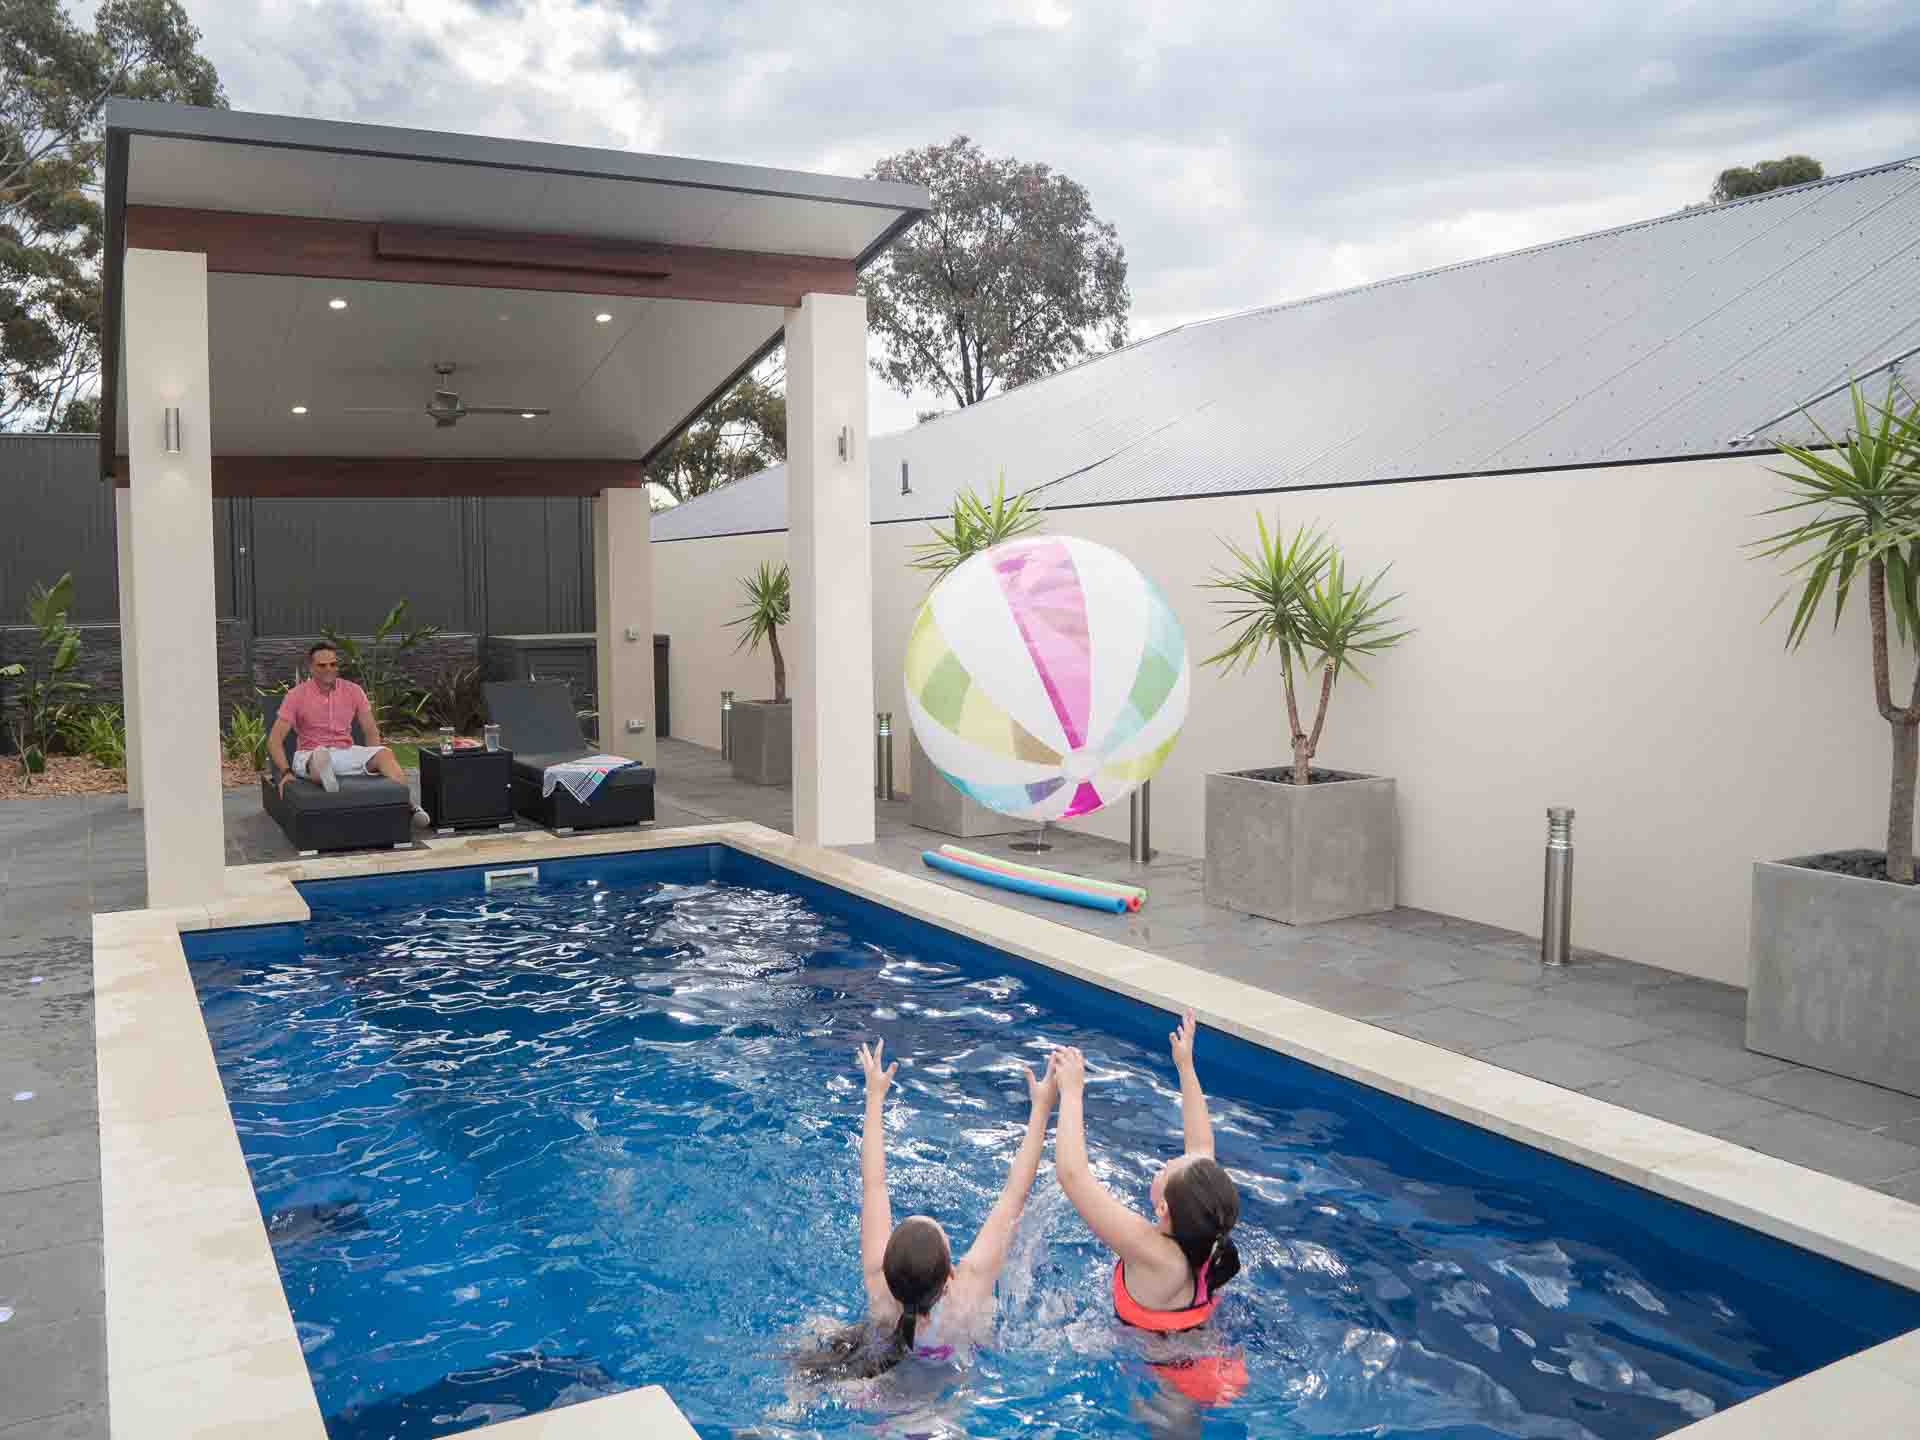 How to Add Value to Your Home with a Concrete Pool - A concrete pool adds home appeal to family buyers, Australian Outdoor Living.